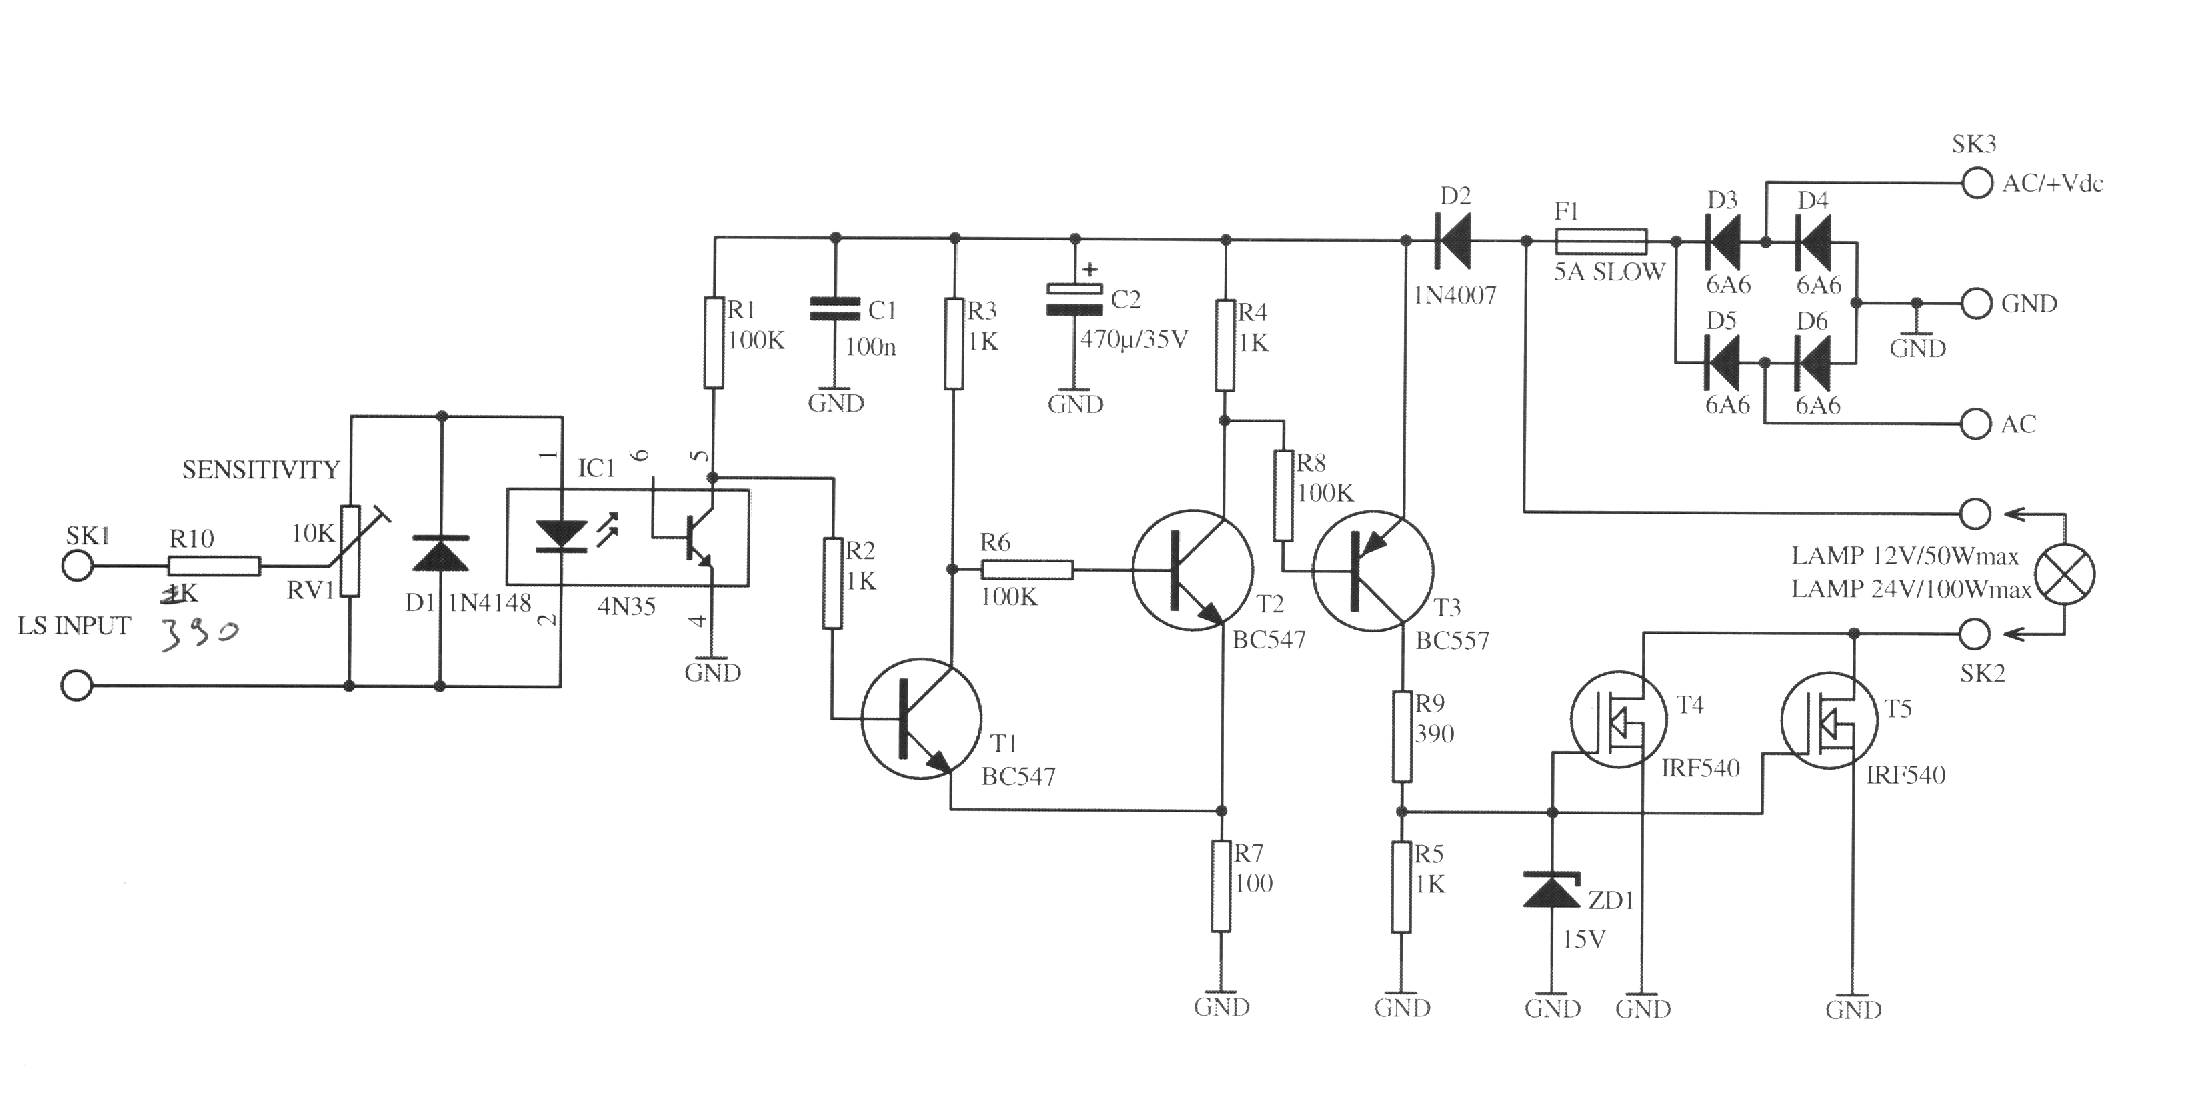 Mk on Led Schematic Diagram